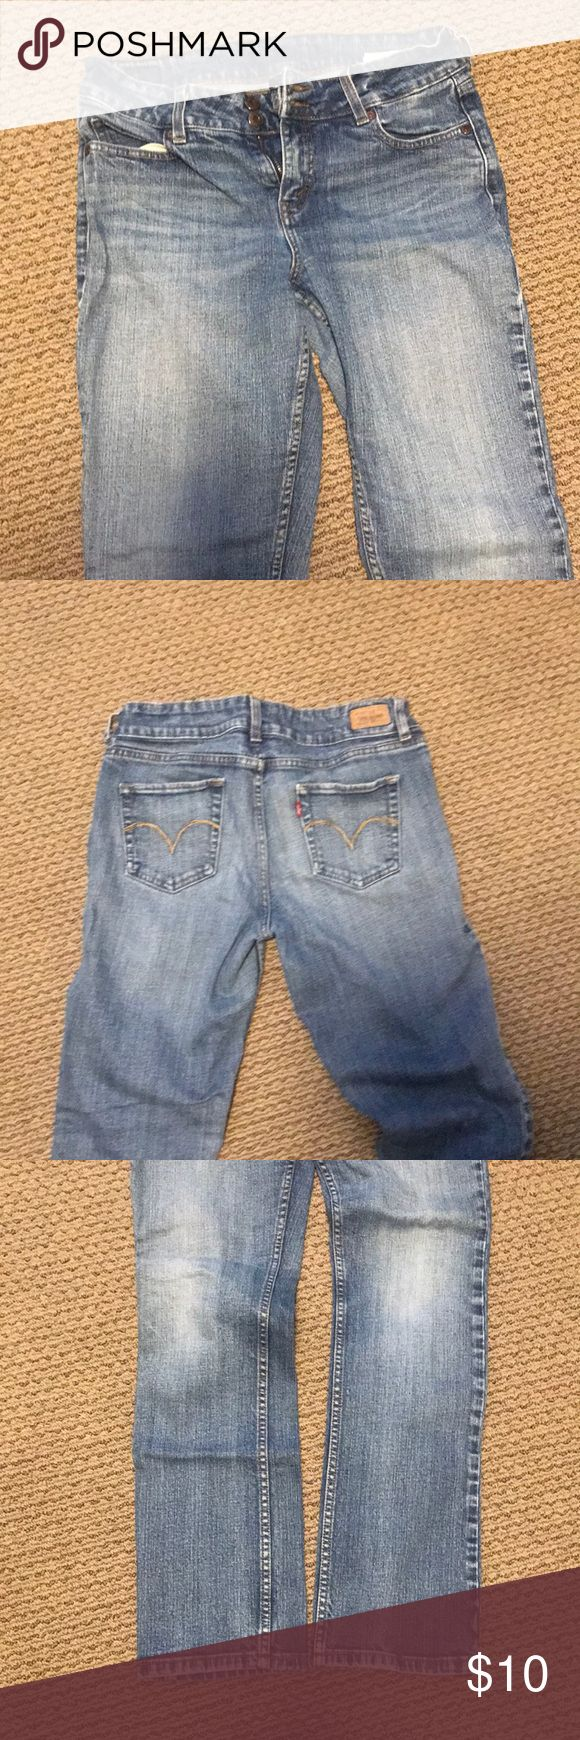 Levi's Slender Straight 526 jeans Great jeans with straight legs and a little stretch. One belt loop torn, as shown in picture. Double button fly. A lot of wear left in these jeans! Price reflects condition Levi's Jeans Straight Leg